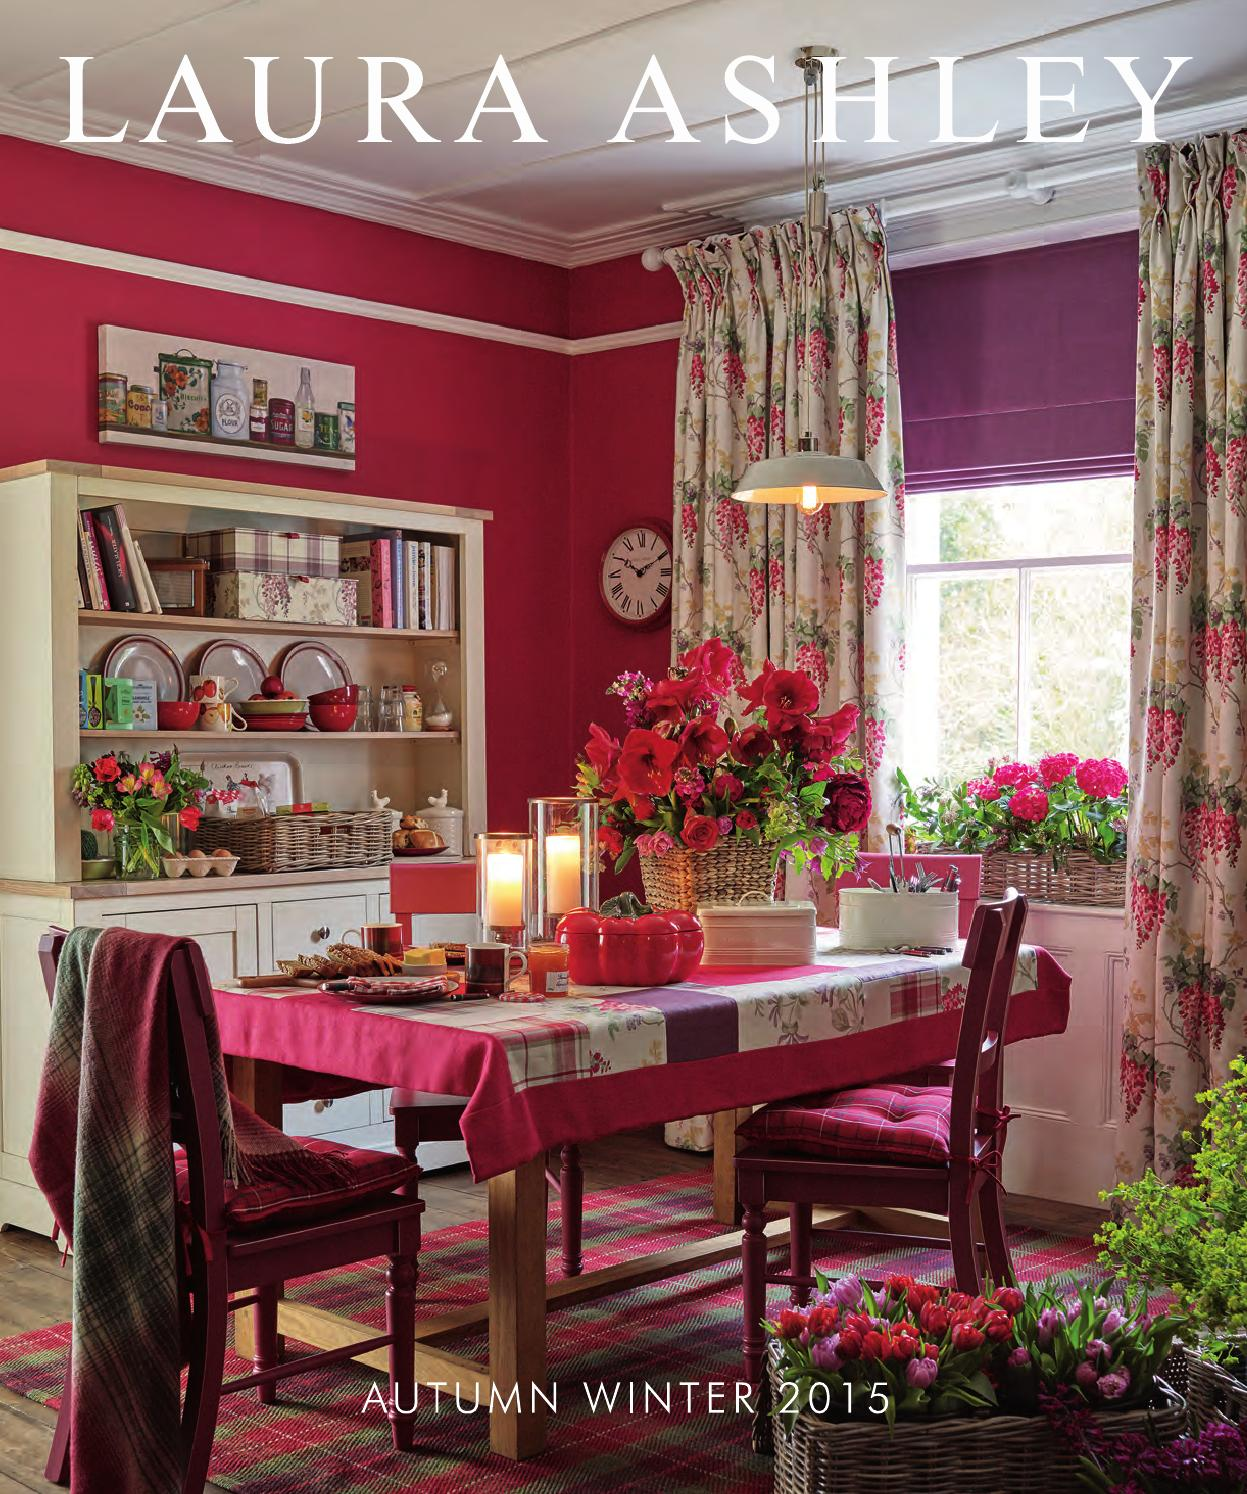 laura ashley - photo #22